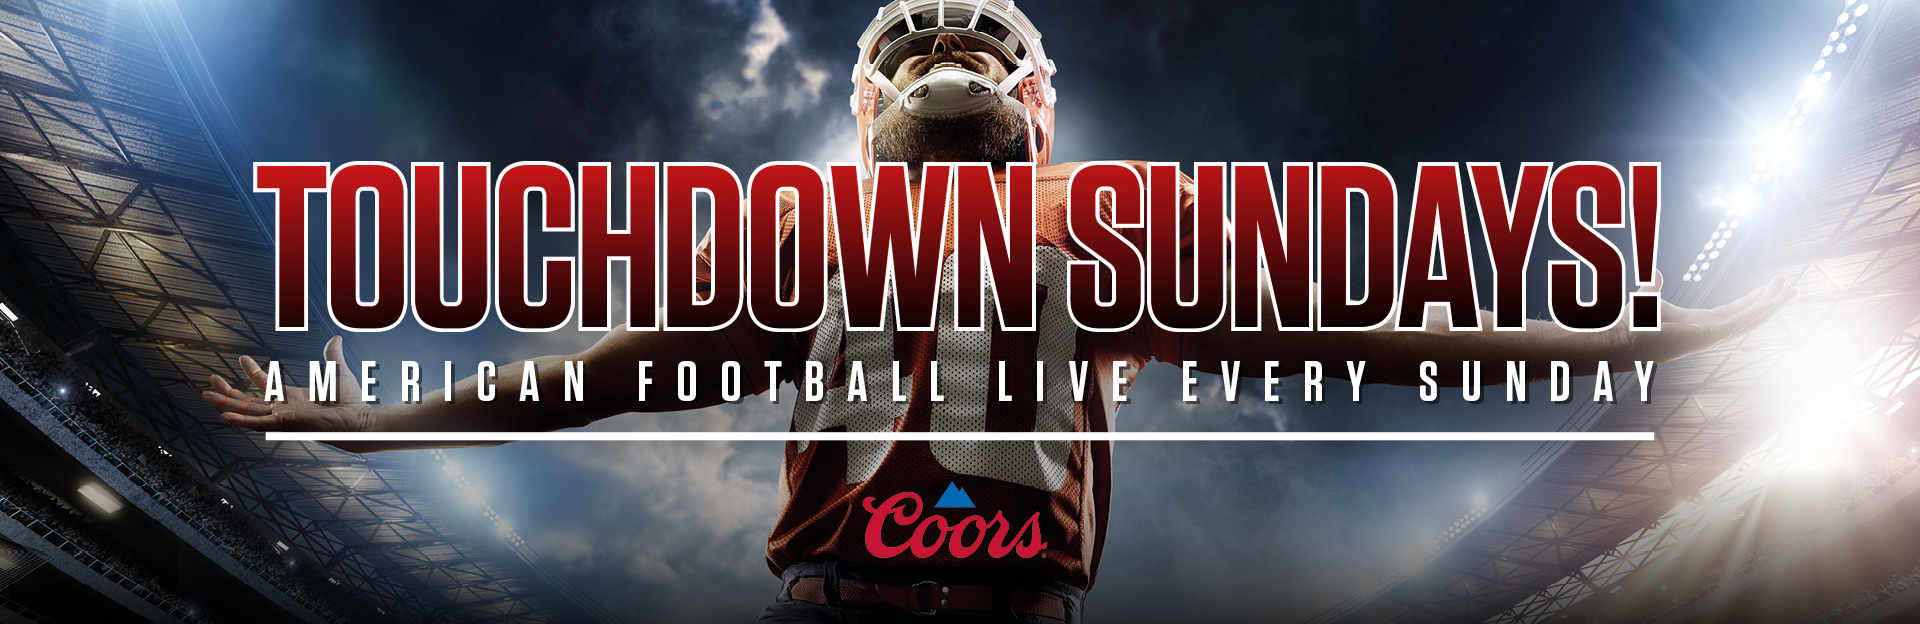 Watch NFL at The Green Man